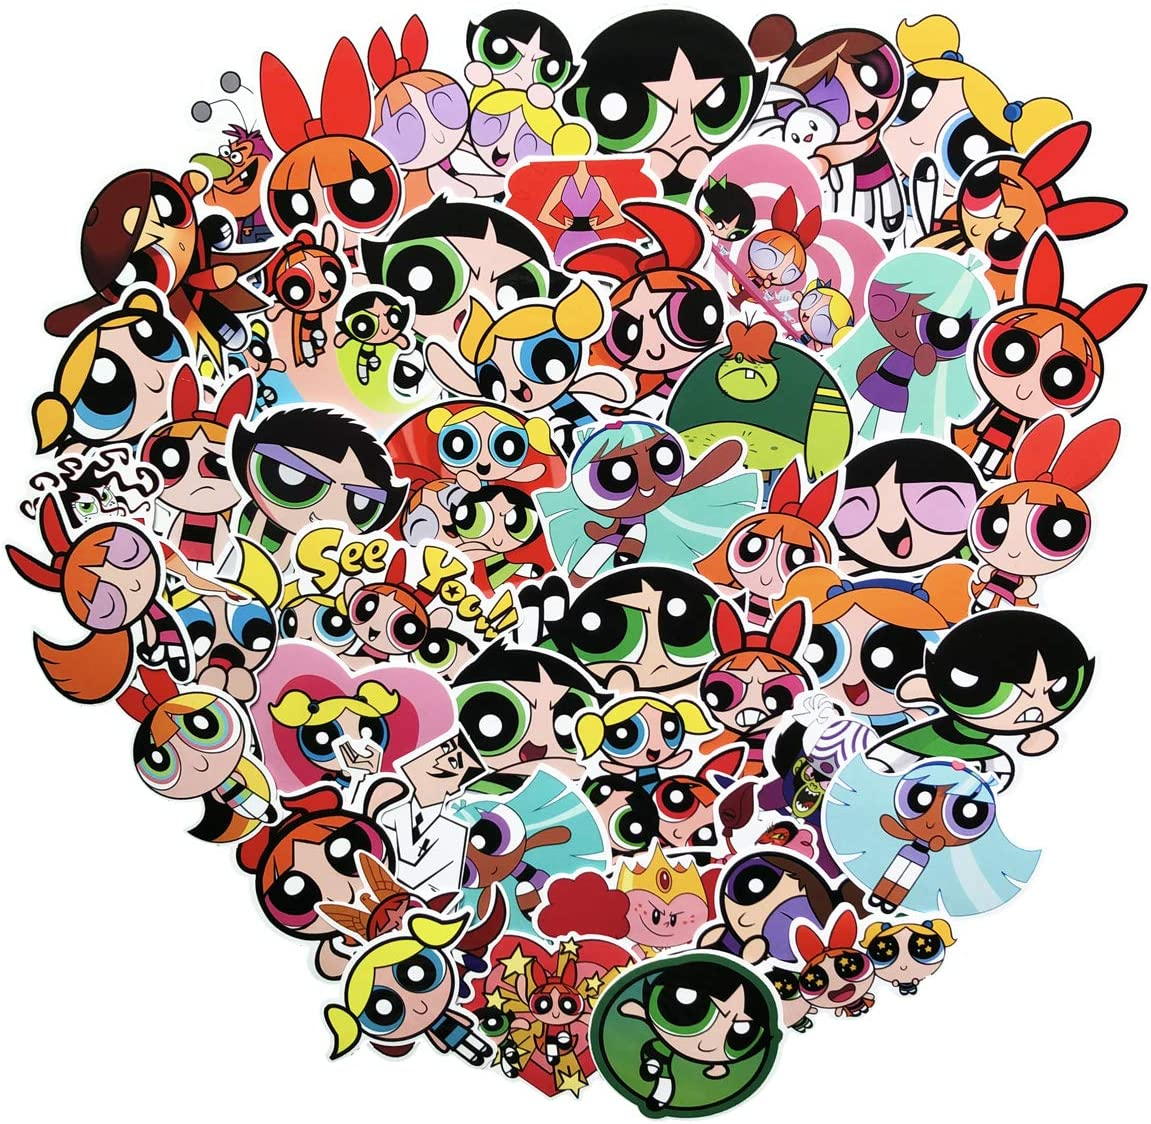 50pcs The Powerpuff Girls Cartoon Sticker Laptop Vinyl Stickers for Waterbottle,Snowboard,Luggage,Motorcycle,Wall,DIY Party Supplie Patches Decal Powerpuff Girls 50